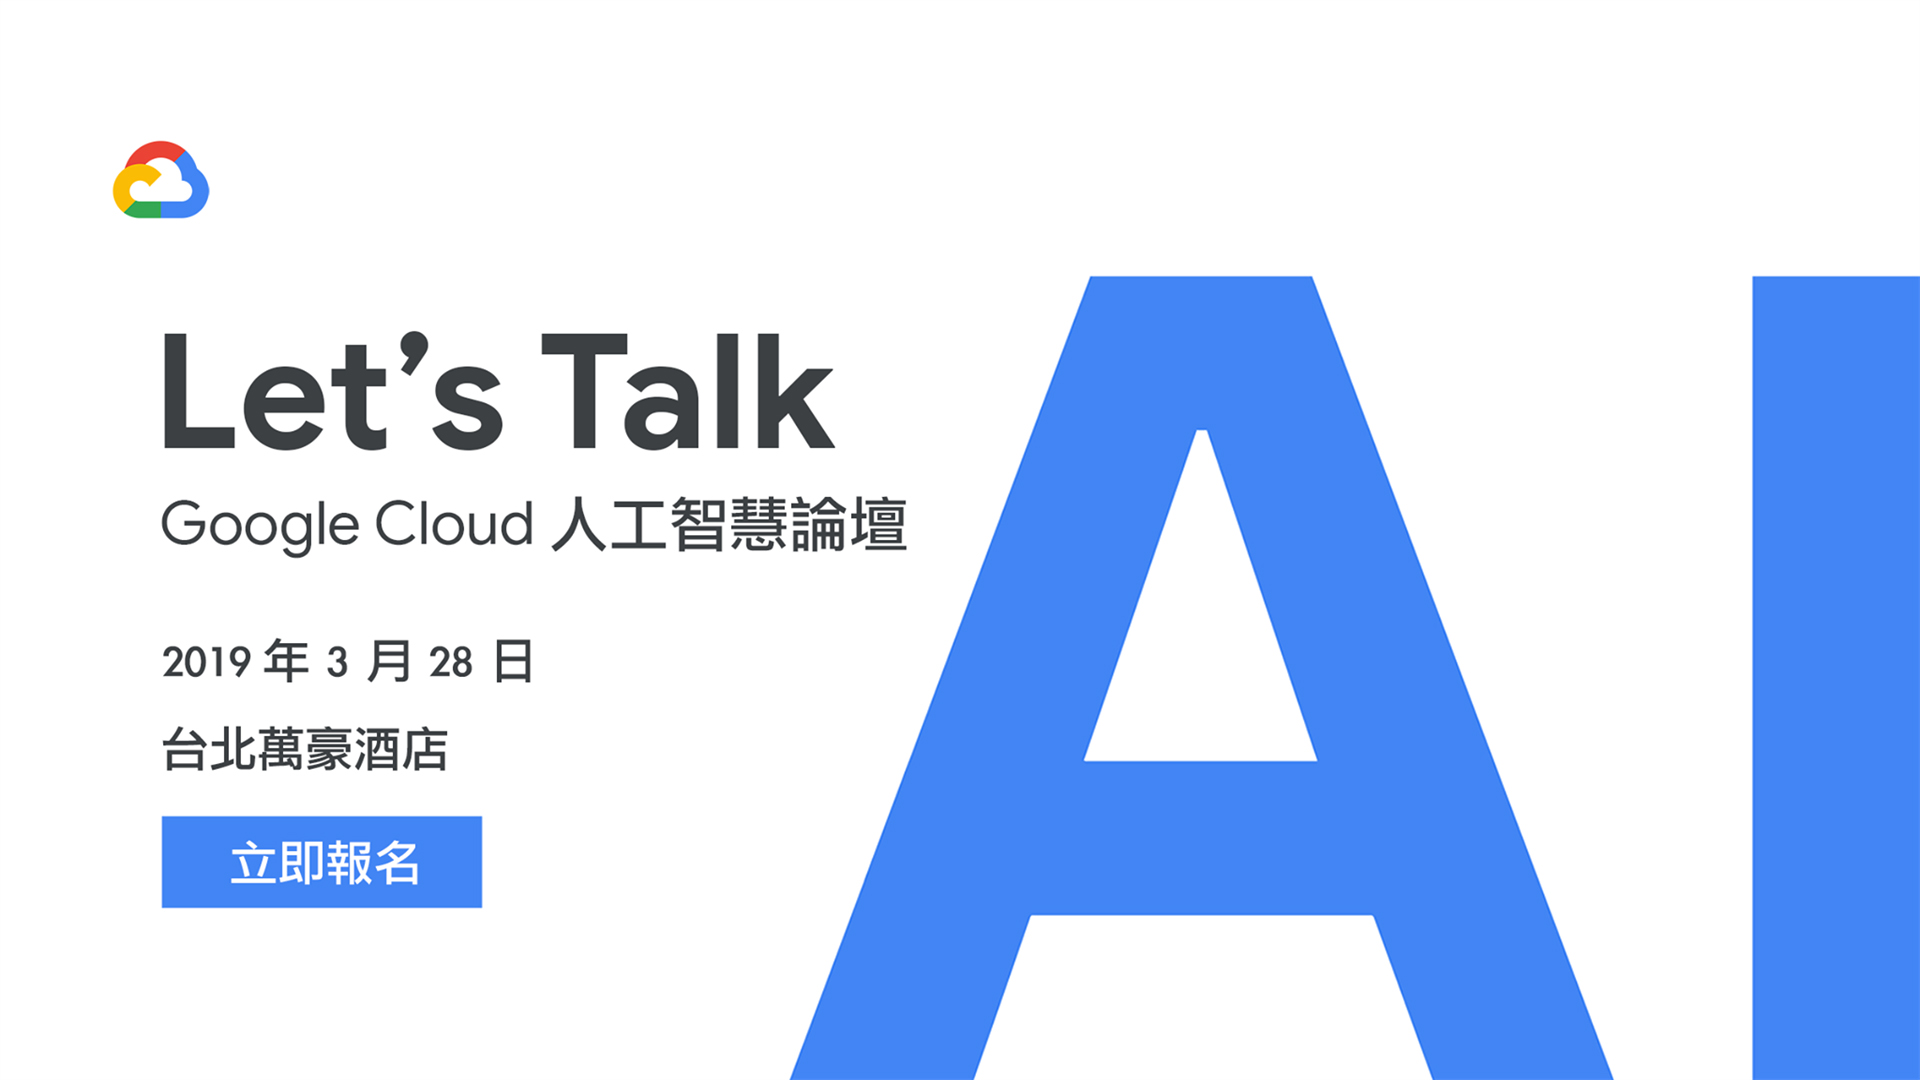 2019 Google Cloud Let's Talk AI 人工智慧論壇